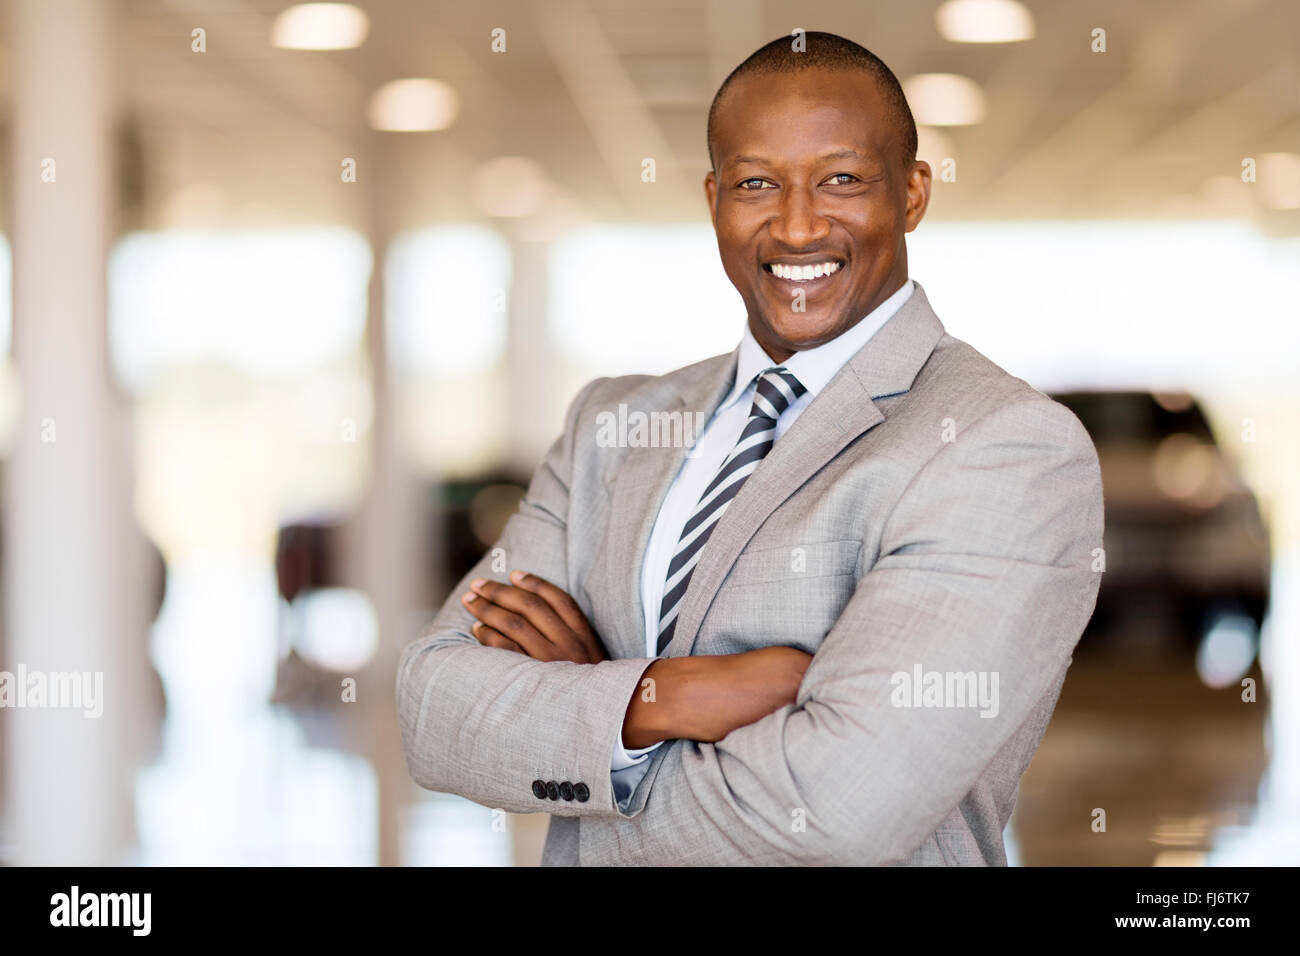 African car sales consultant with arms folded in showroom - Stock Image